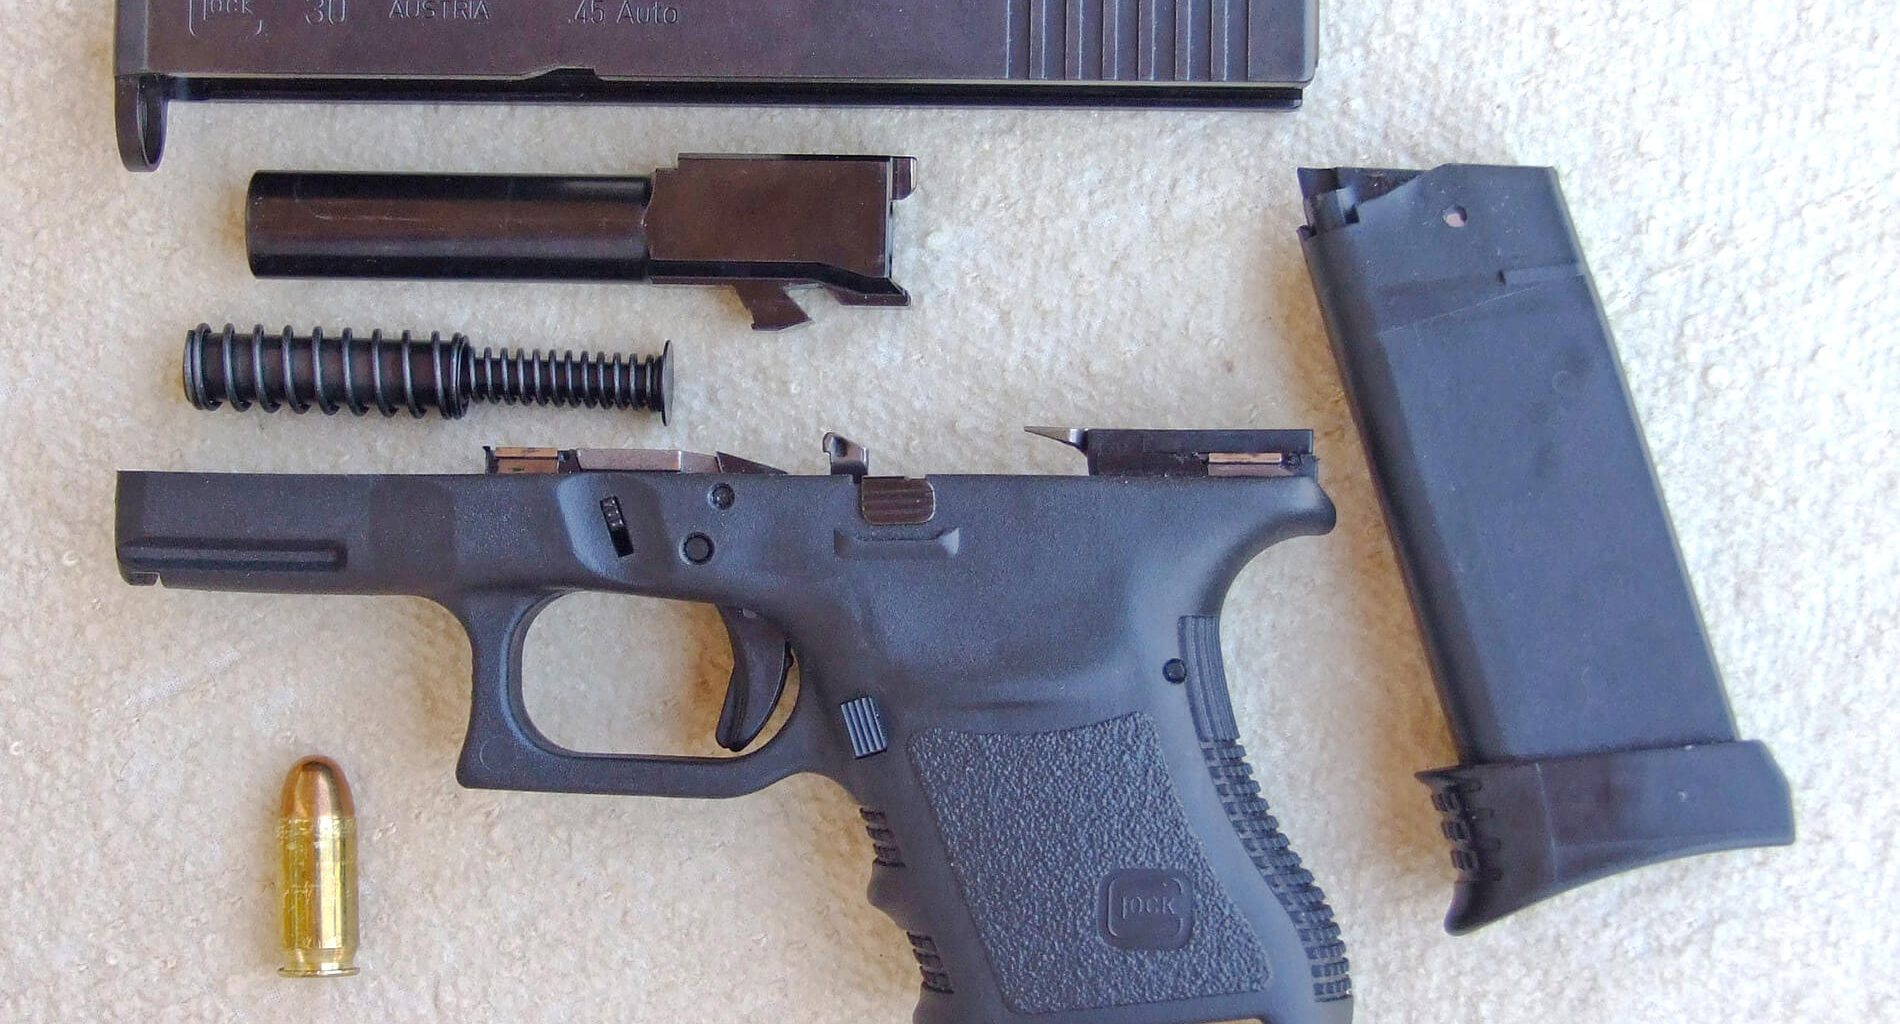 Glock 30 in .45 ACP disassembled